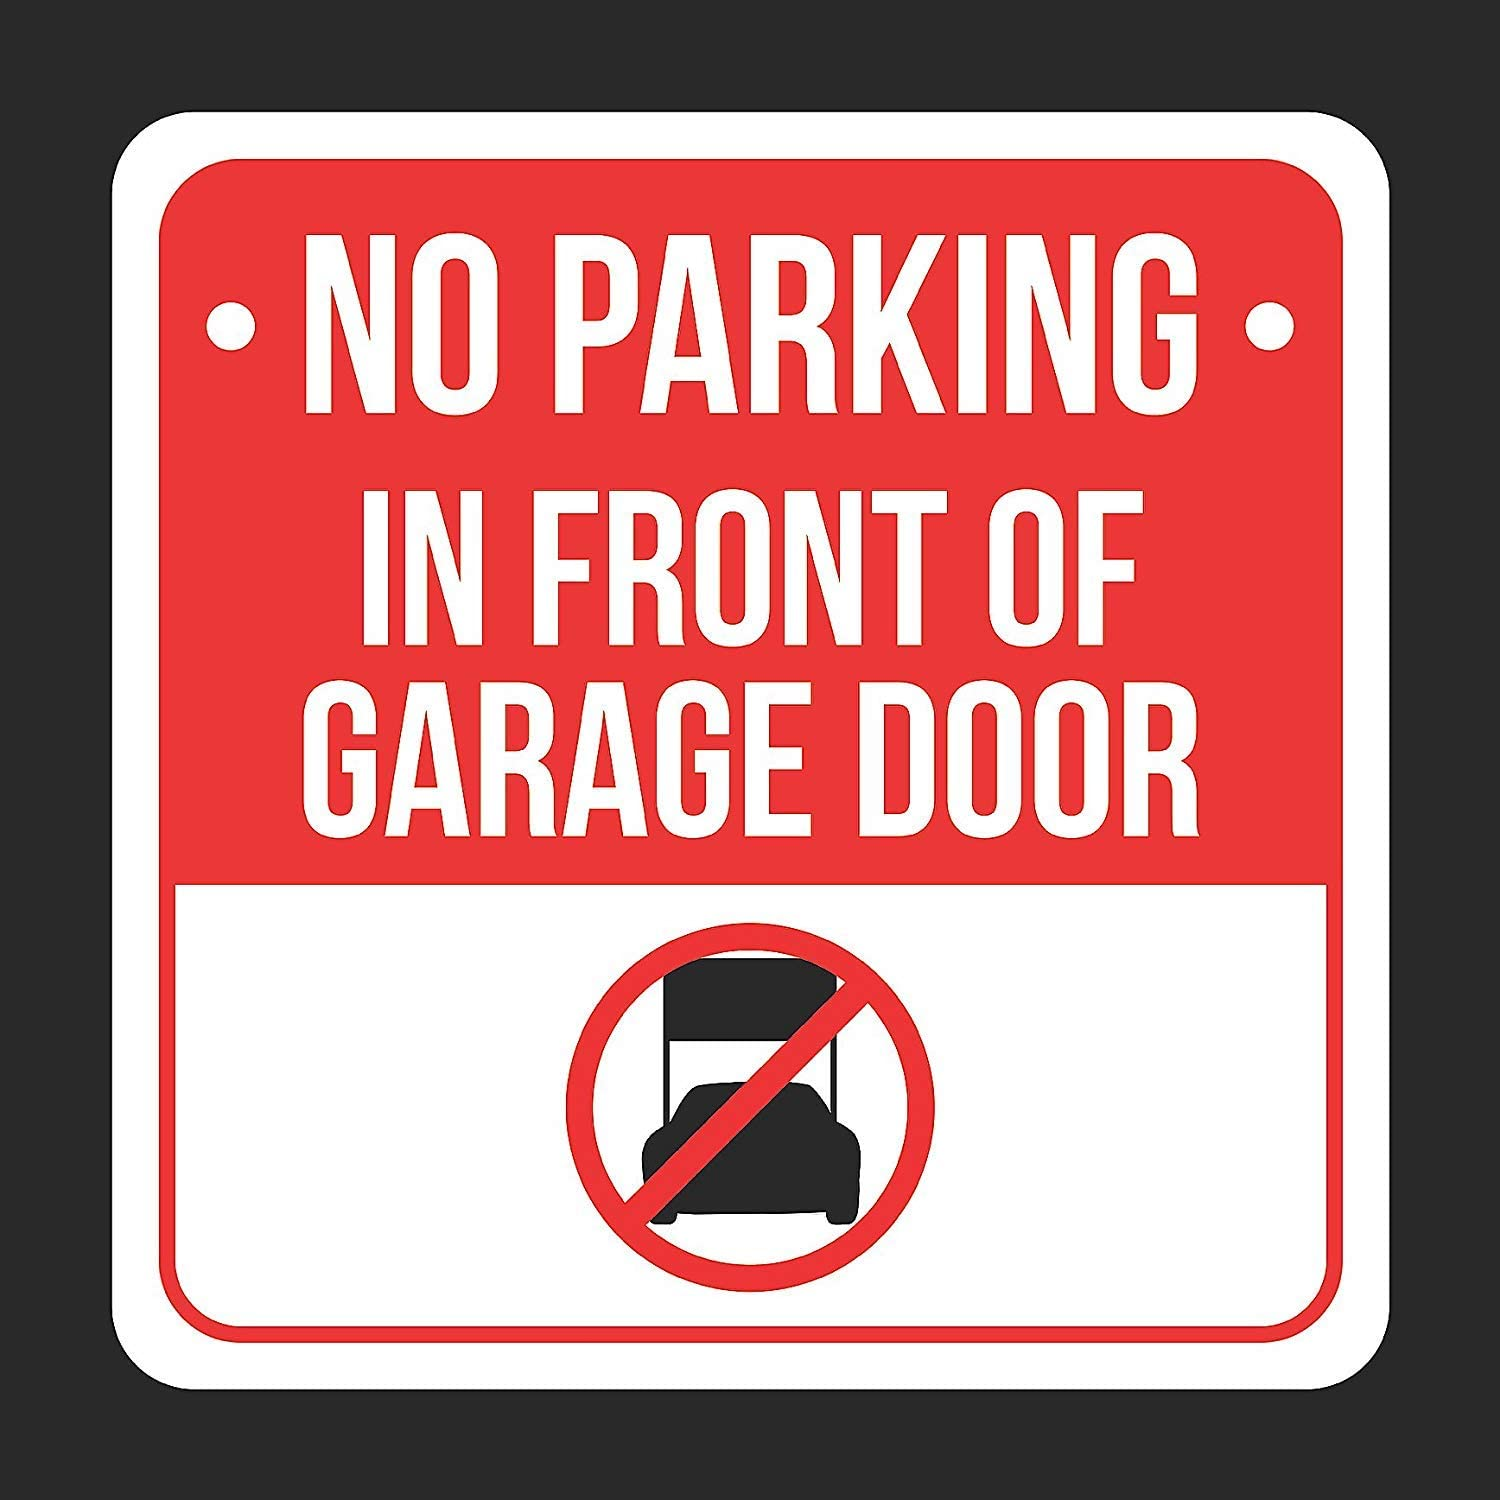 No Parking in Front of Garage Door with Symbol Print Black, White and Red Metal Square Sign - 6 Pack of Signs, 12x12